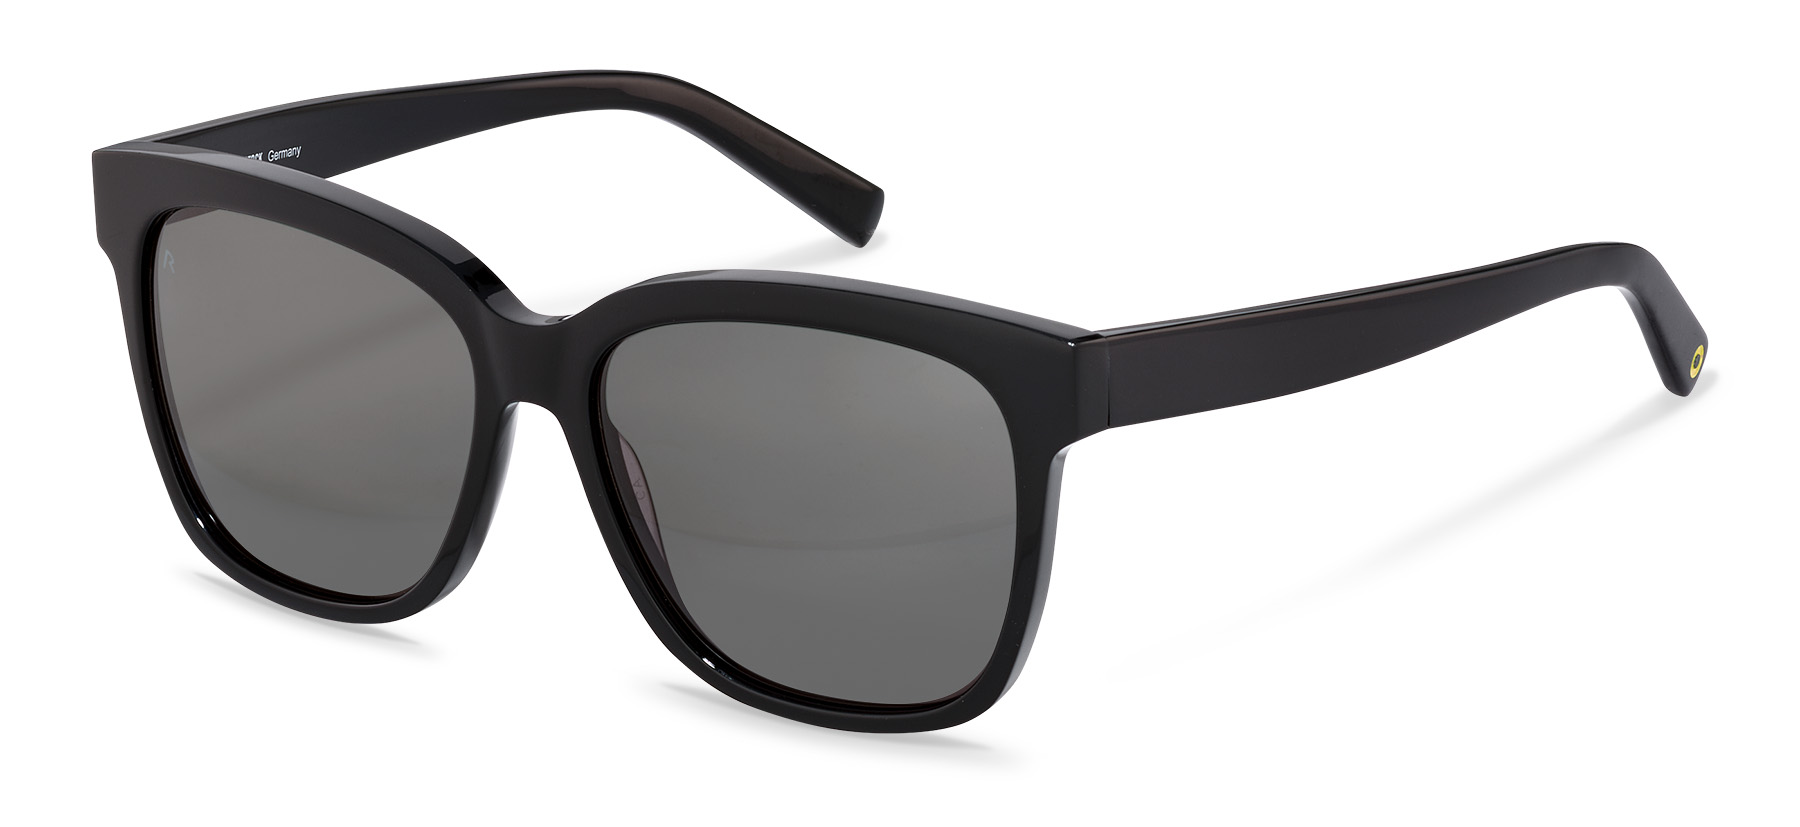 Rodenstock Capsule Collection-Sunglasses-RR337-black